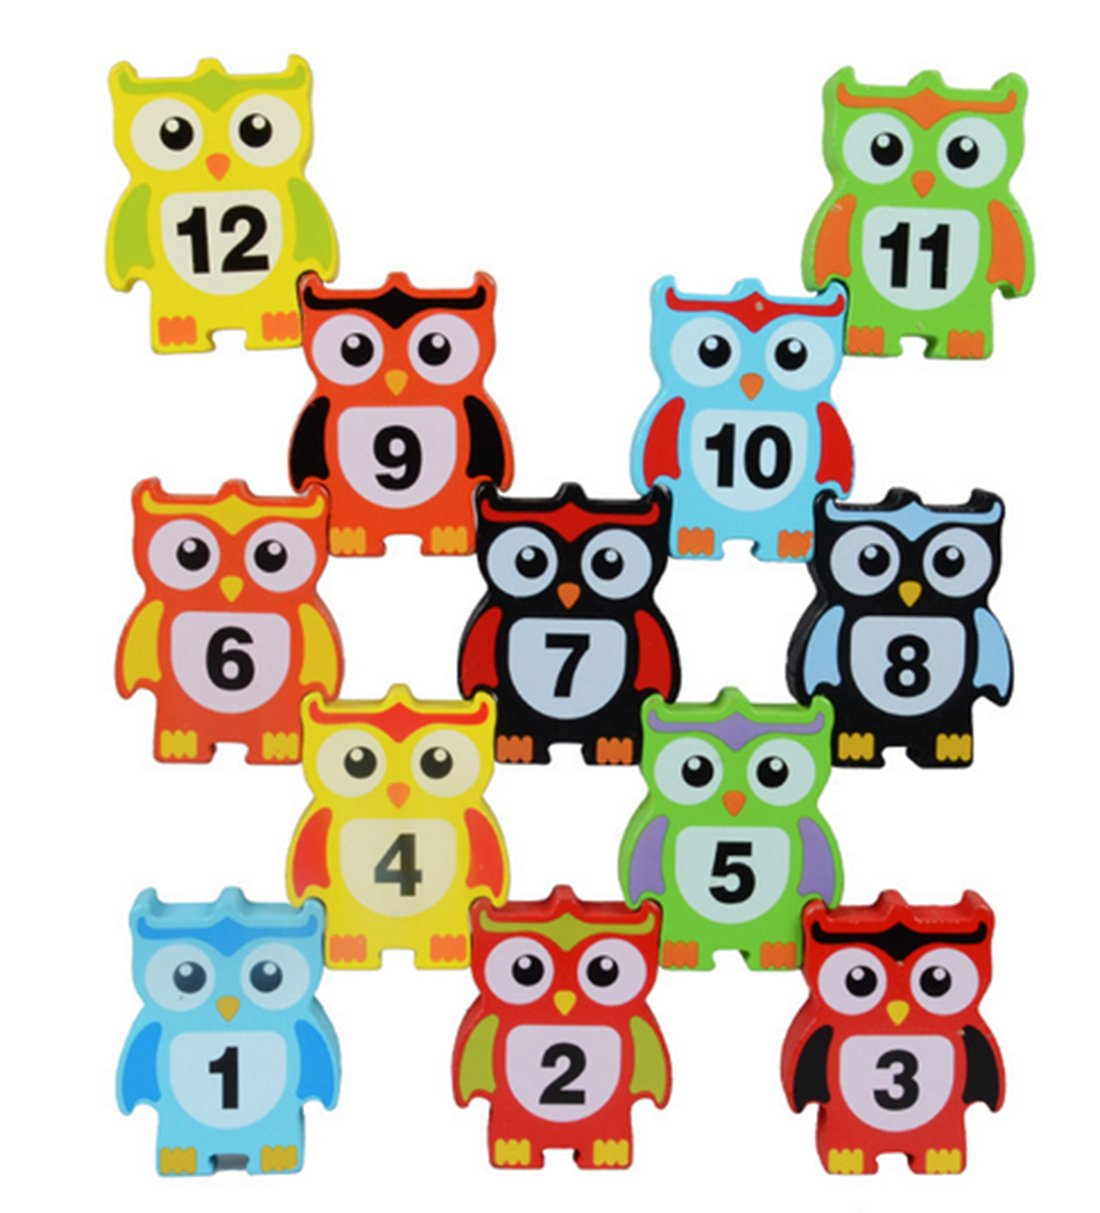 Naovio 12 Pcs Wooden Children Stacking Toy Owl Shapes Stacking Blocks Toys Balance Game Toy Set for Kids Ideal Christmas Gift Birthday Gift for Children